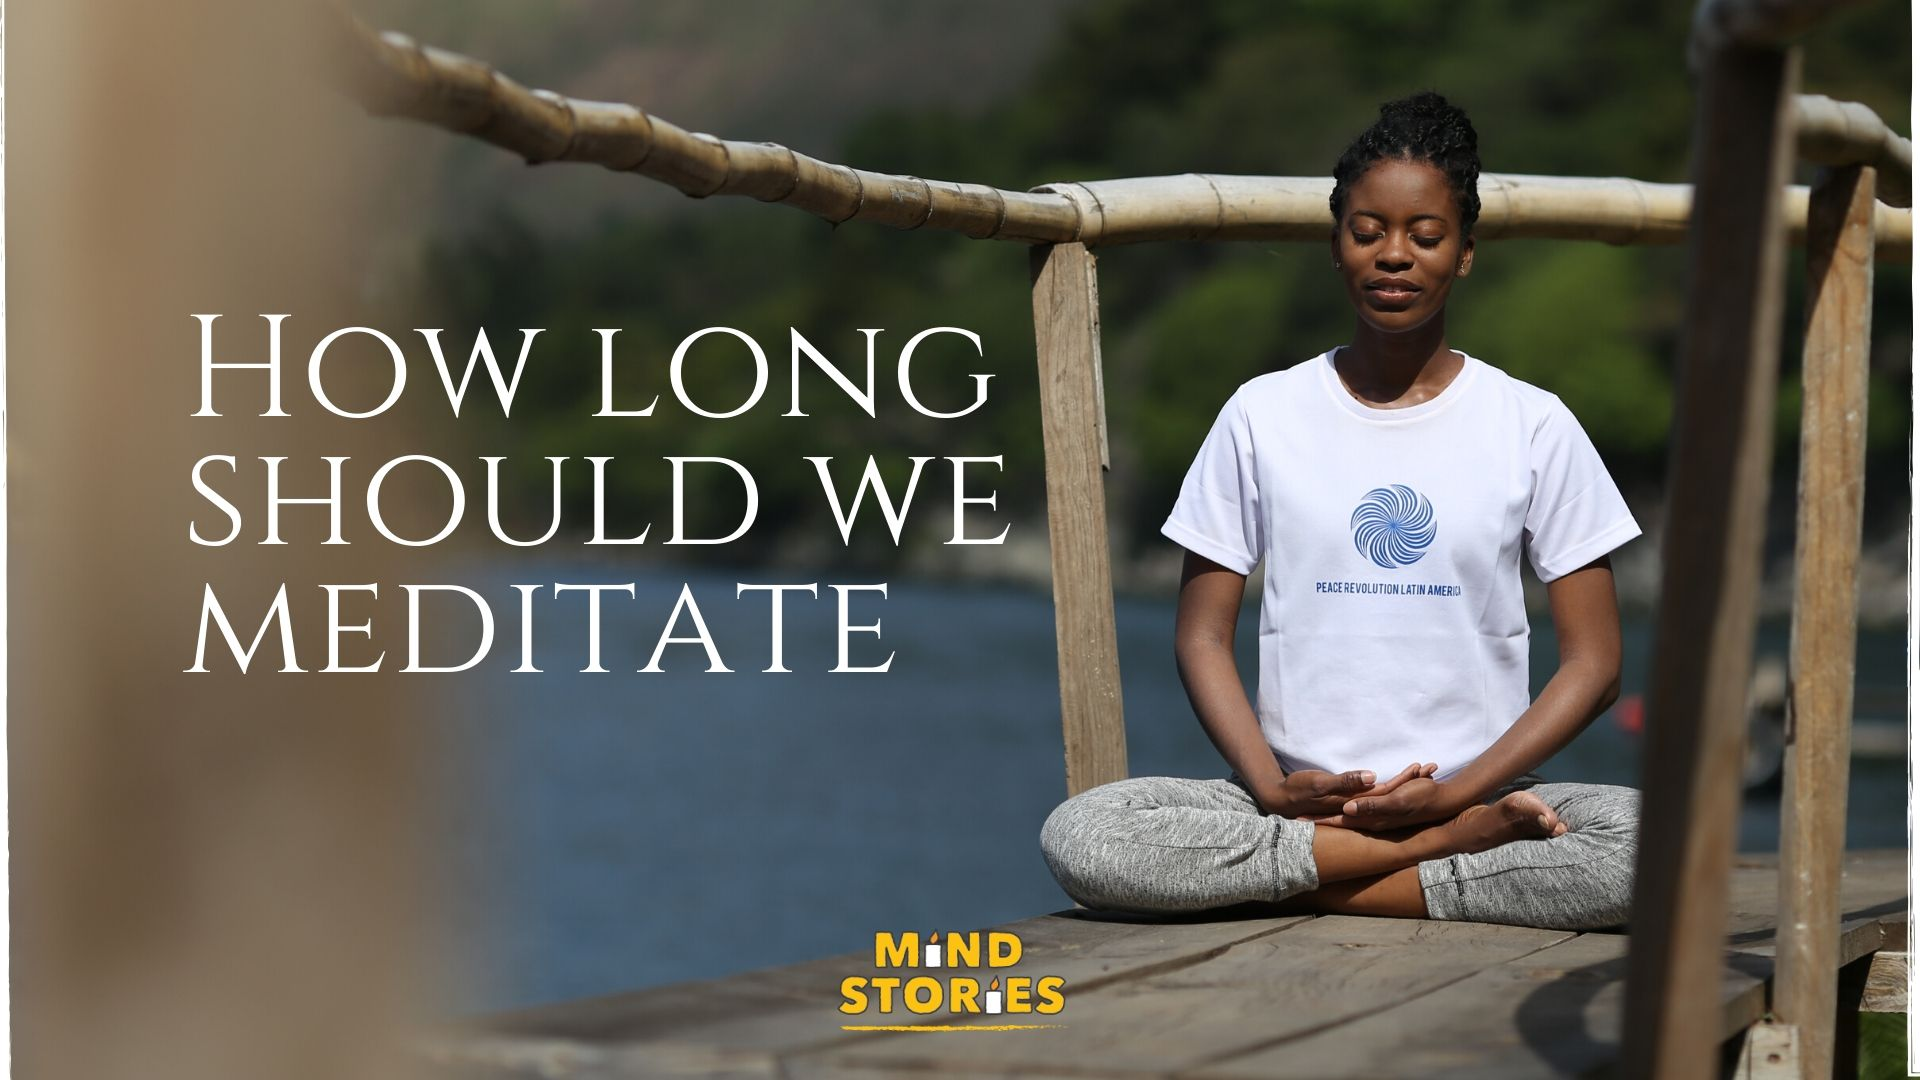 How long should we meditate?